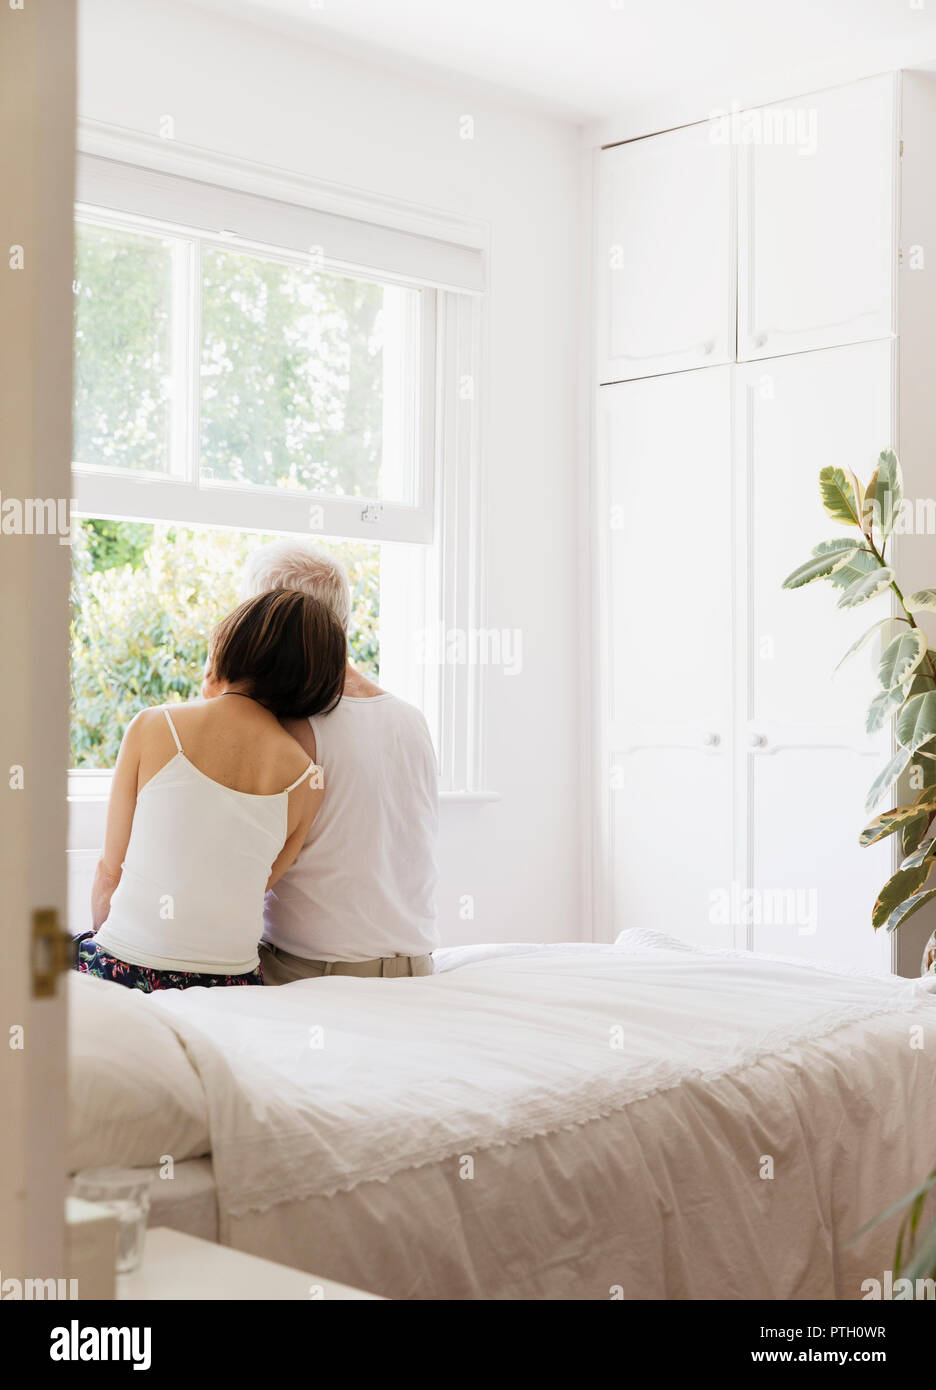 Serene senior couple sitting on bed and looking out window Stock Photo